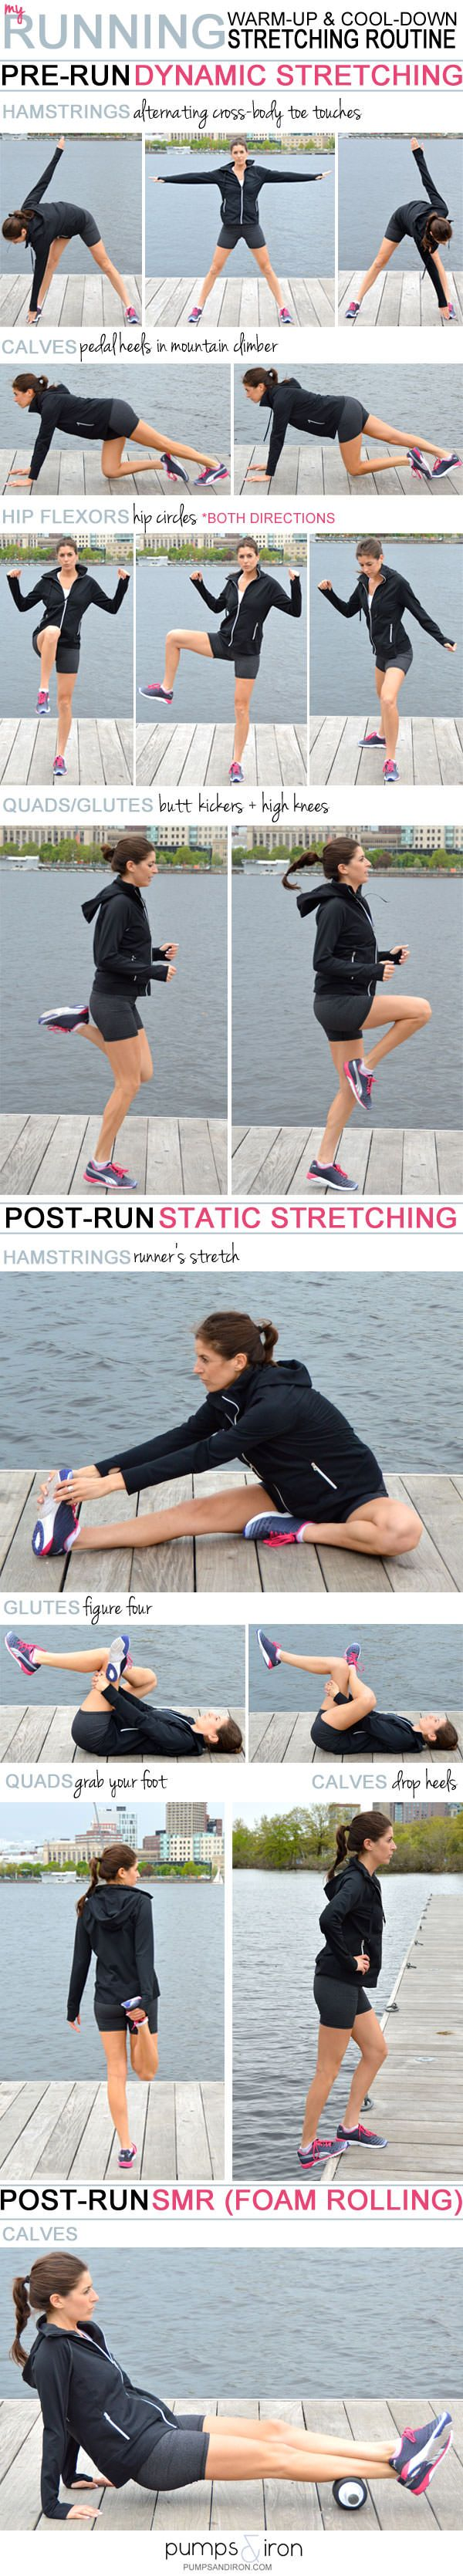 There has been controversy regarding whetherrunners should be stretching before running, or not at all